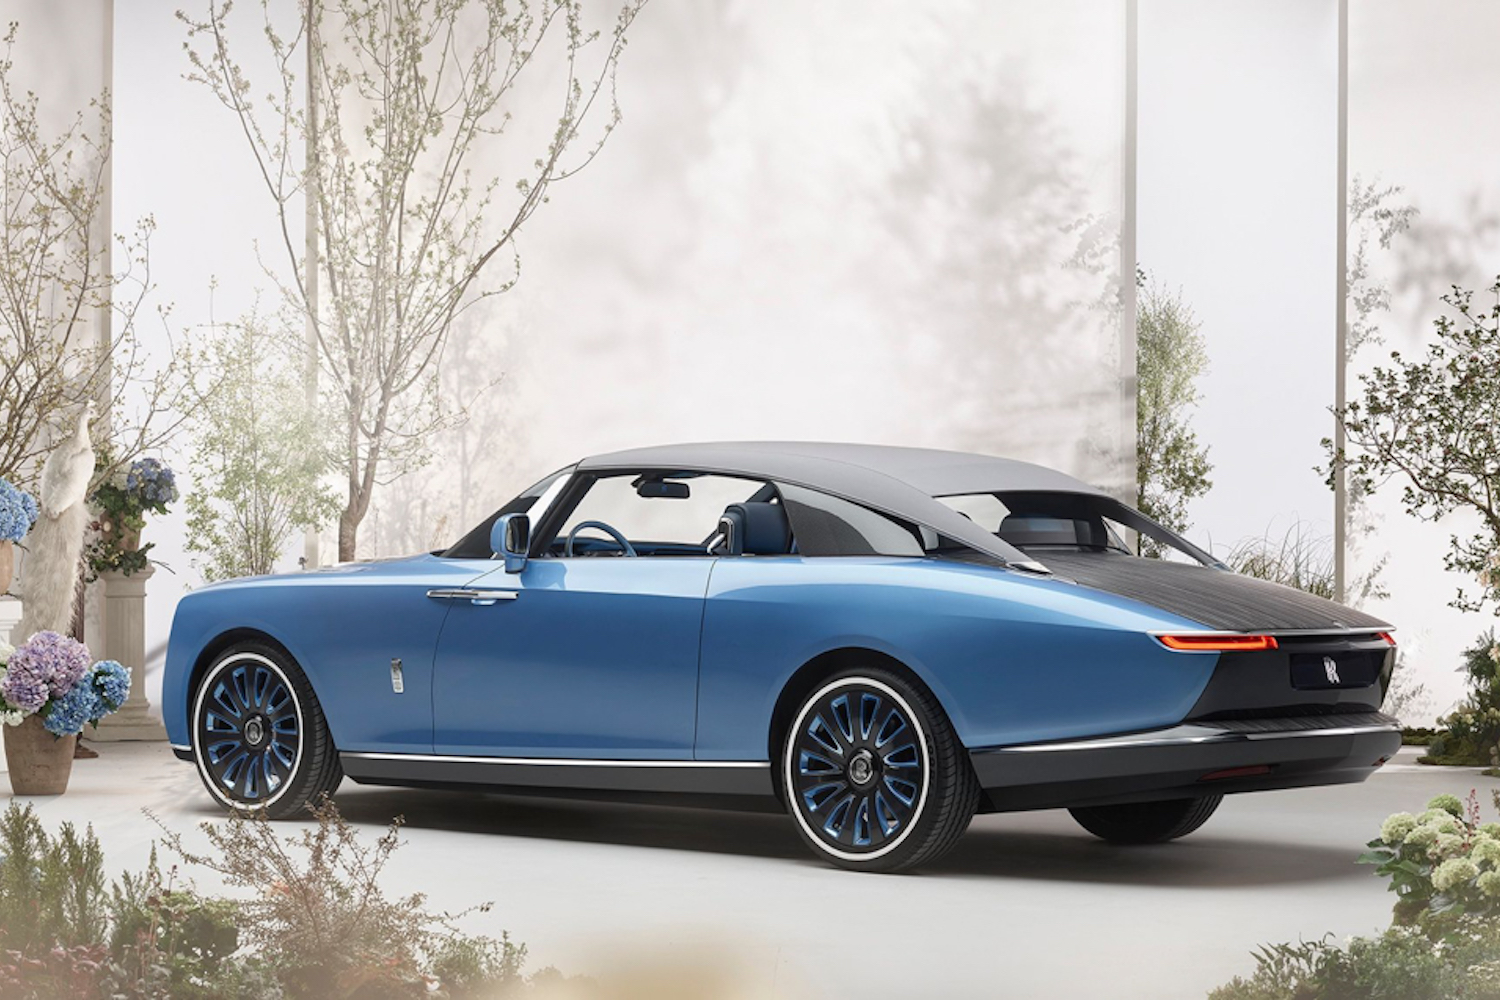 Car News | Rolls-Royce shows off 'coachbuilt' Boat Tail model | CompleteCar.ie